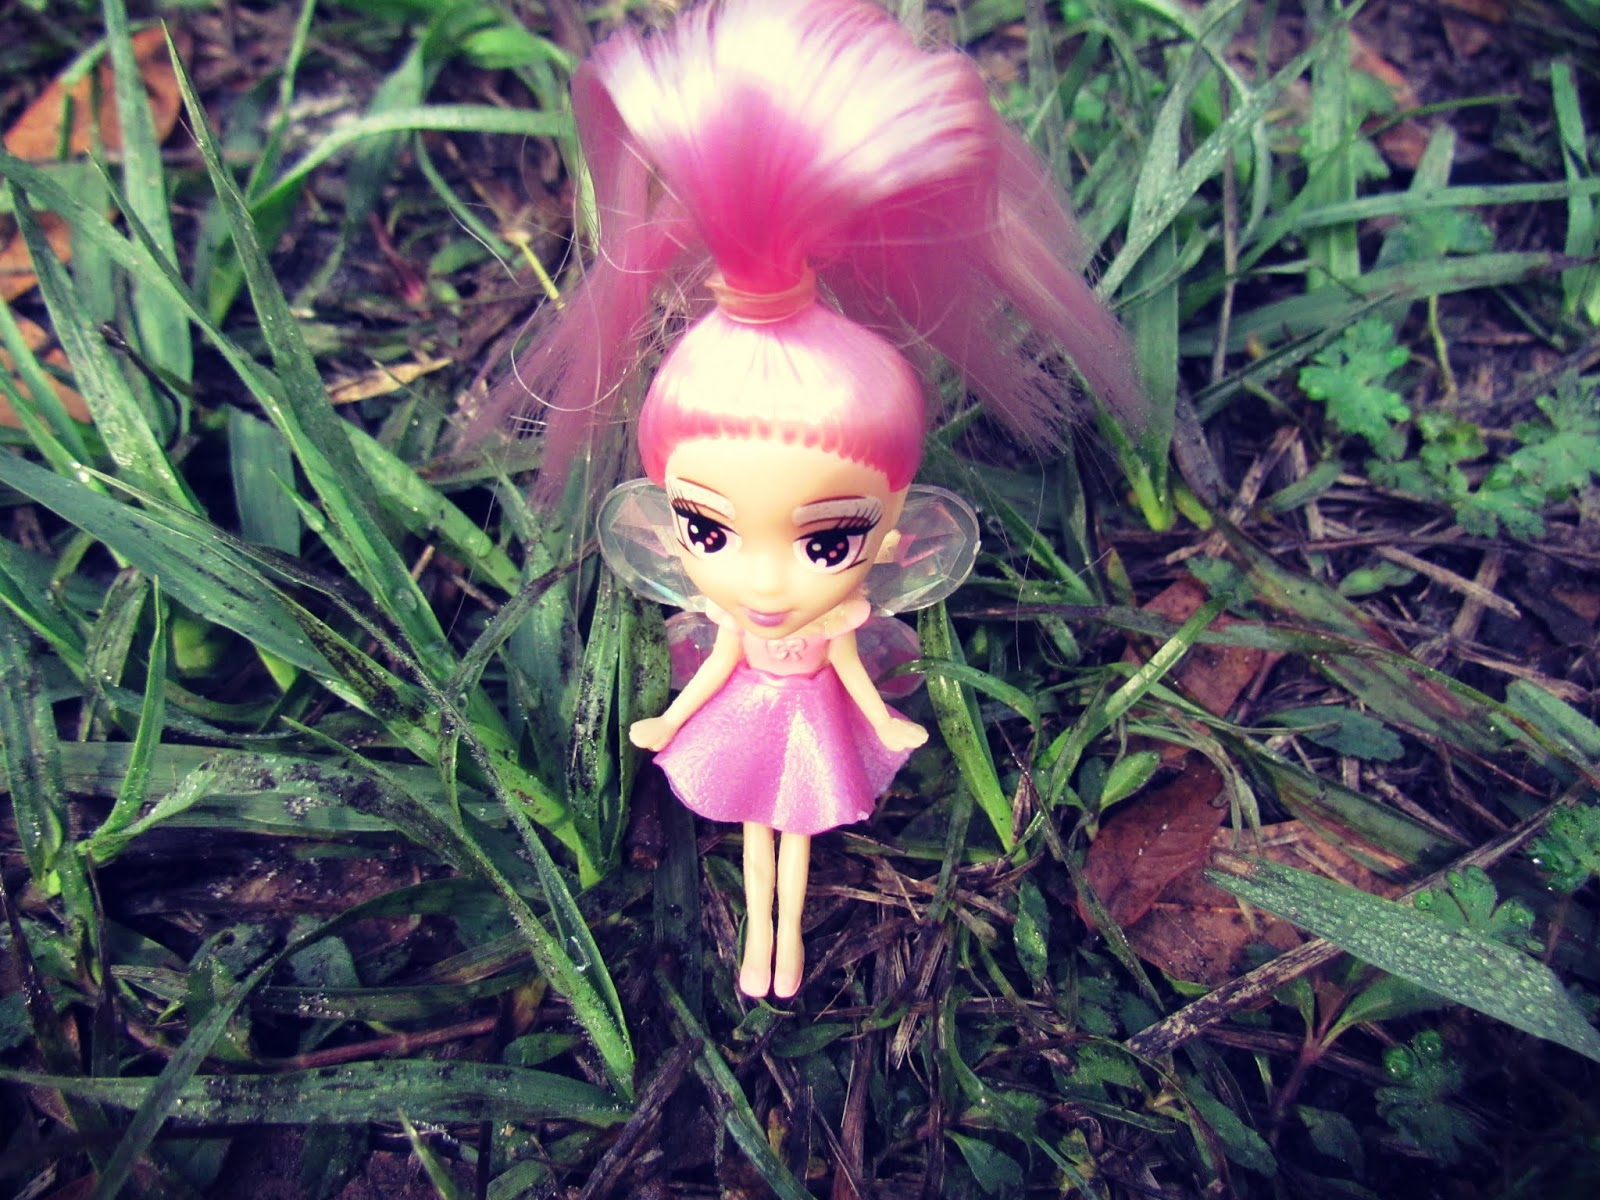 A Pink-haired plastic fairy doll ring in the green tall grass in a meadow in Florida wildlife